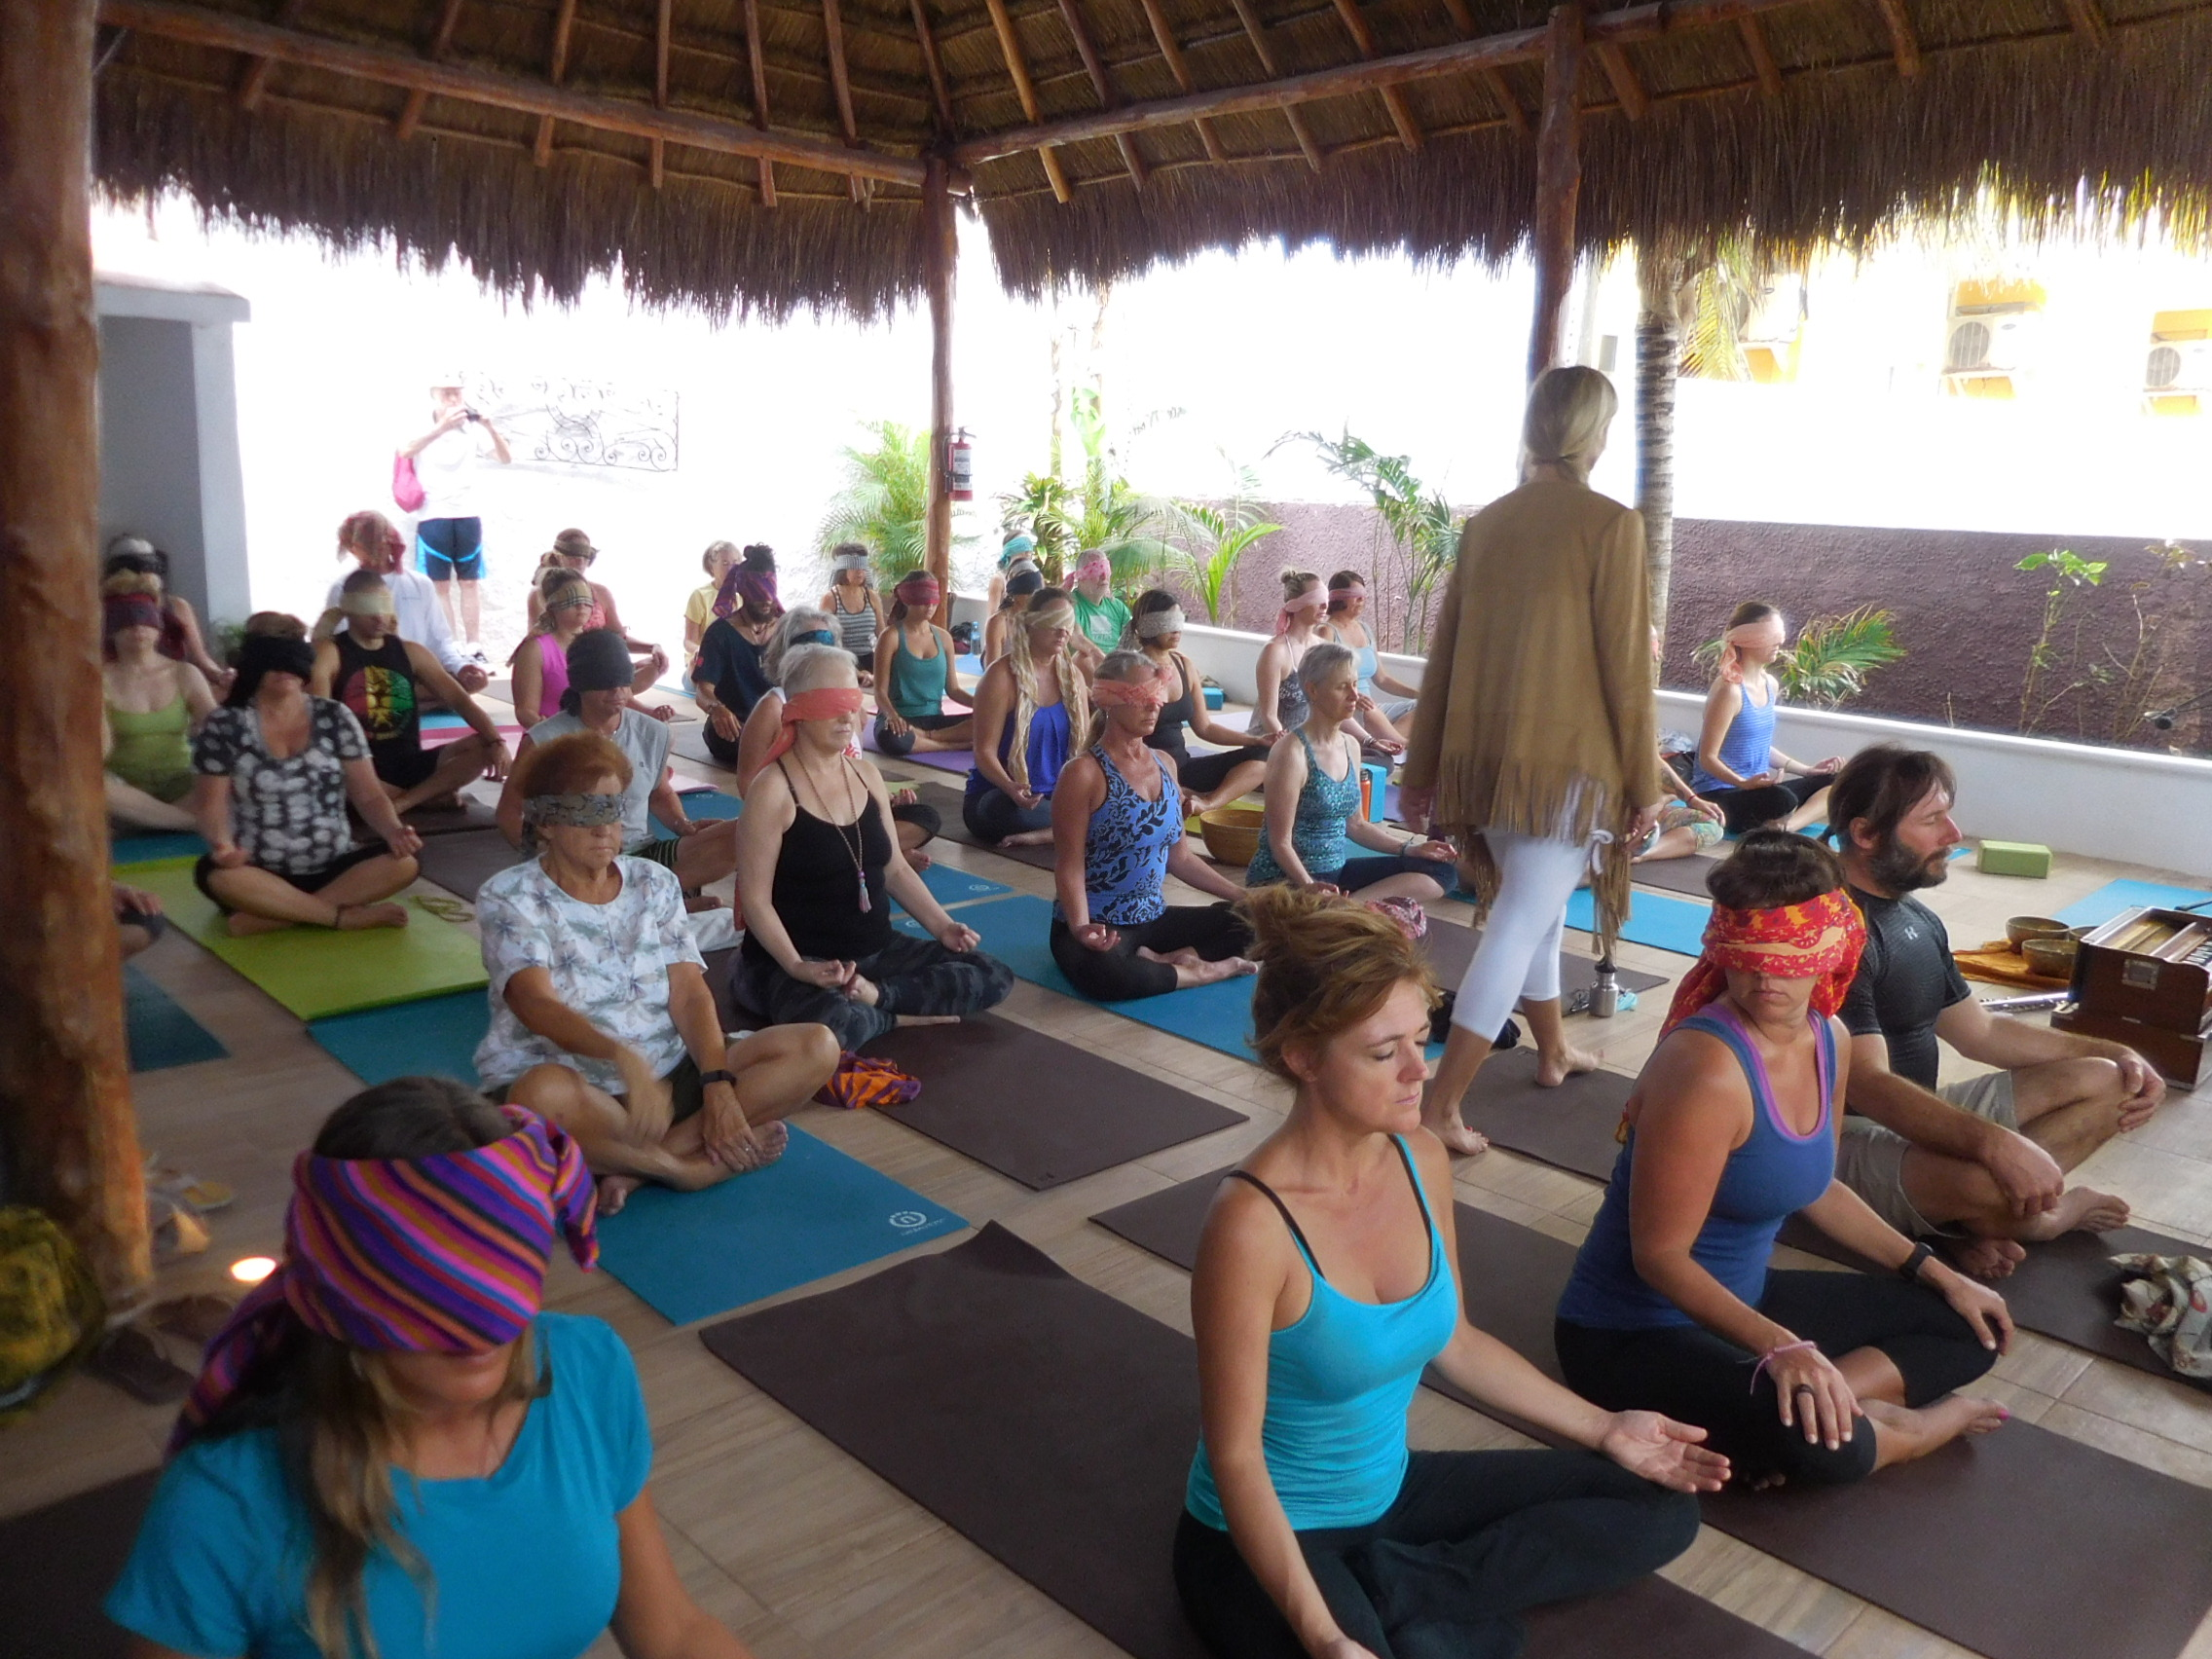 March YTT 2019 - March 1 - 24 2019Isla Mujeres, MexicoRed Buddha Yoga & WellnessBefore September 15 2018 $2200USDAfter September 15, $2600USD15 students max capacity.